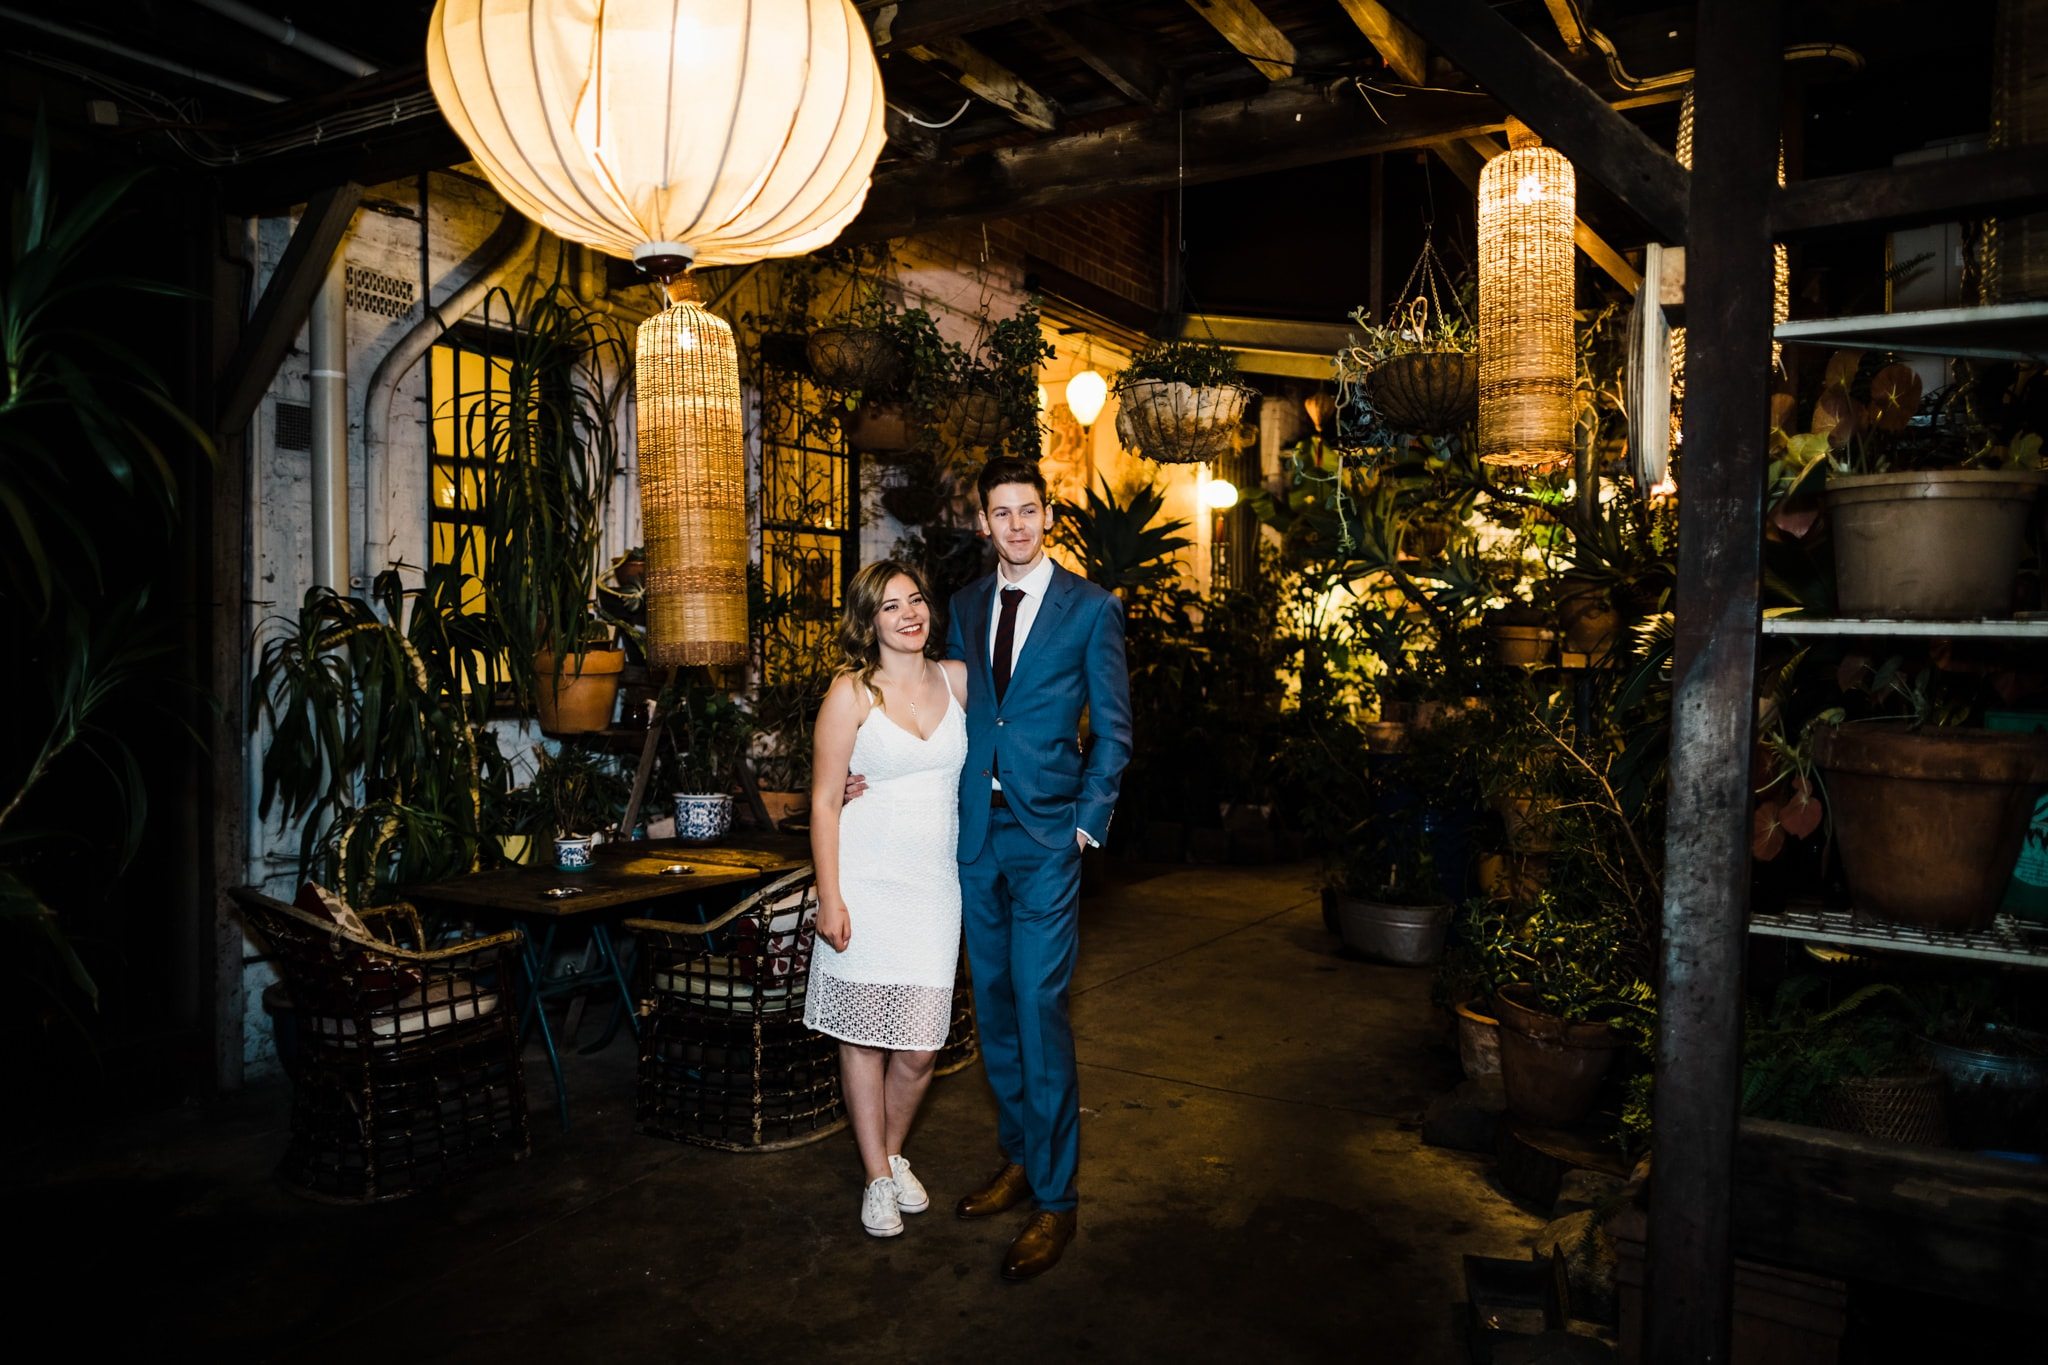 bakehouse studios in richmond - wedding venue photographer